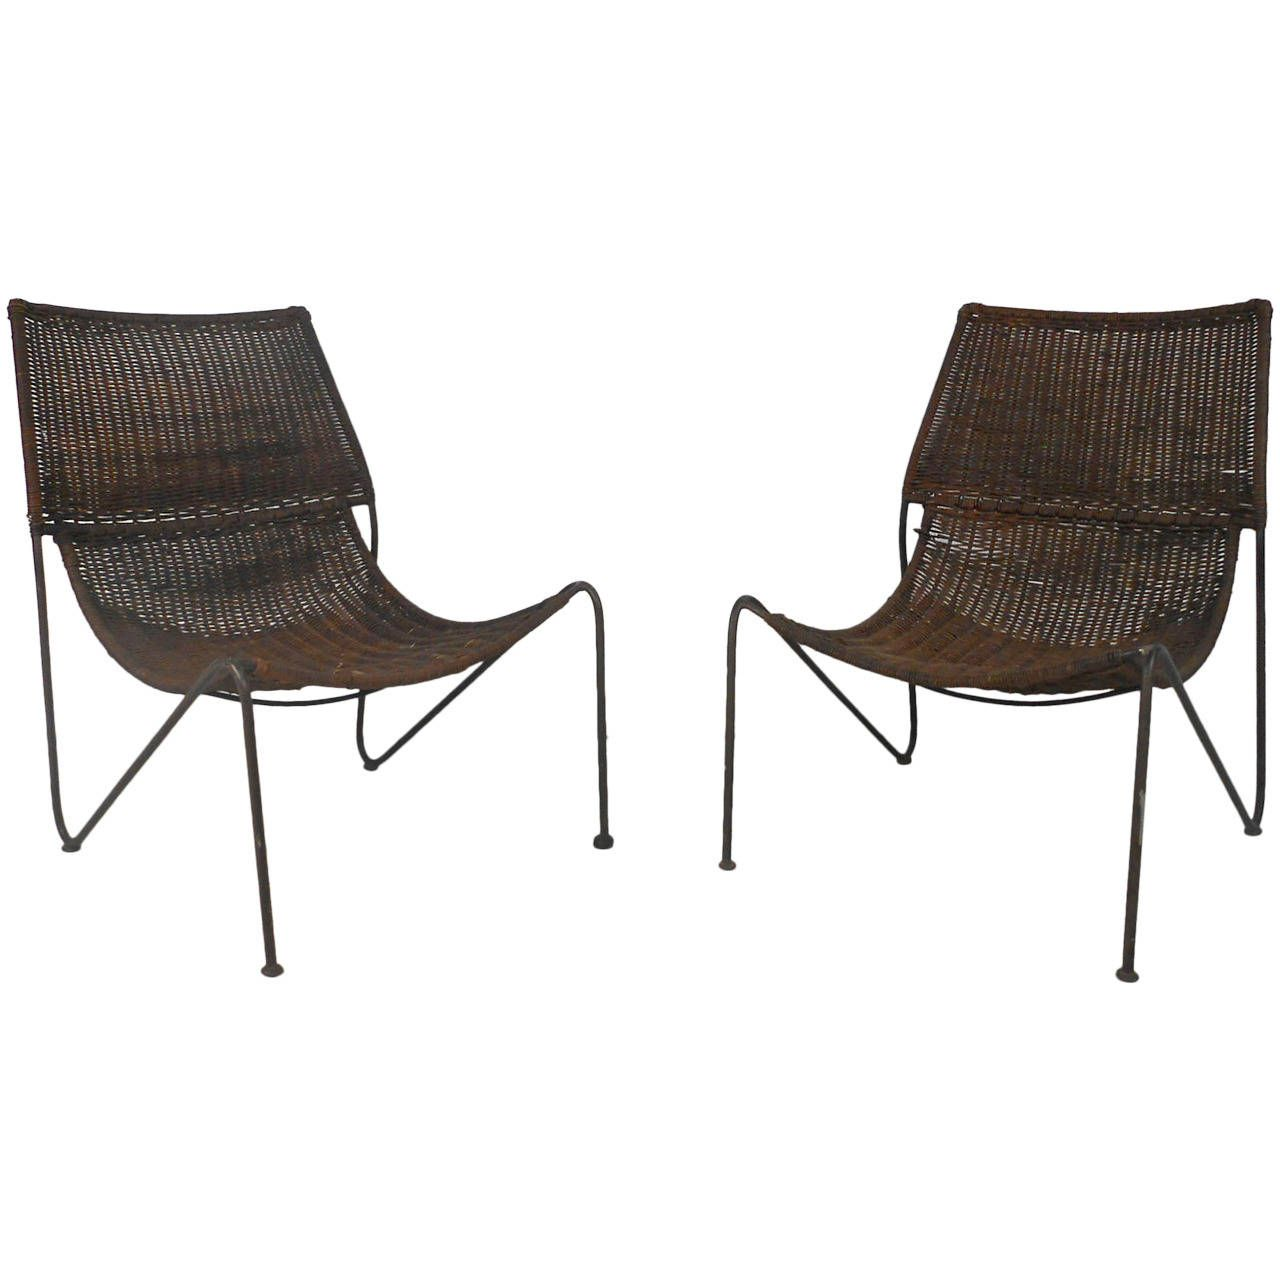 Modern sling chairs - Pair Mid Century Modern Wicker And Iron Frederick Weinberg Sling Scoop Chairs From A